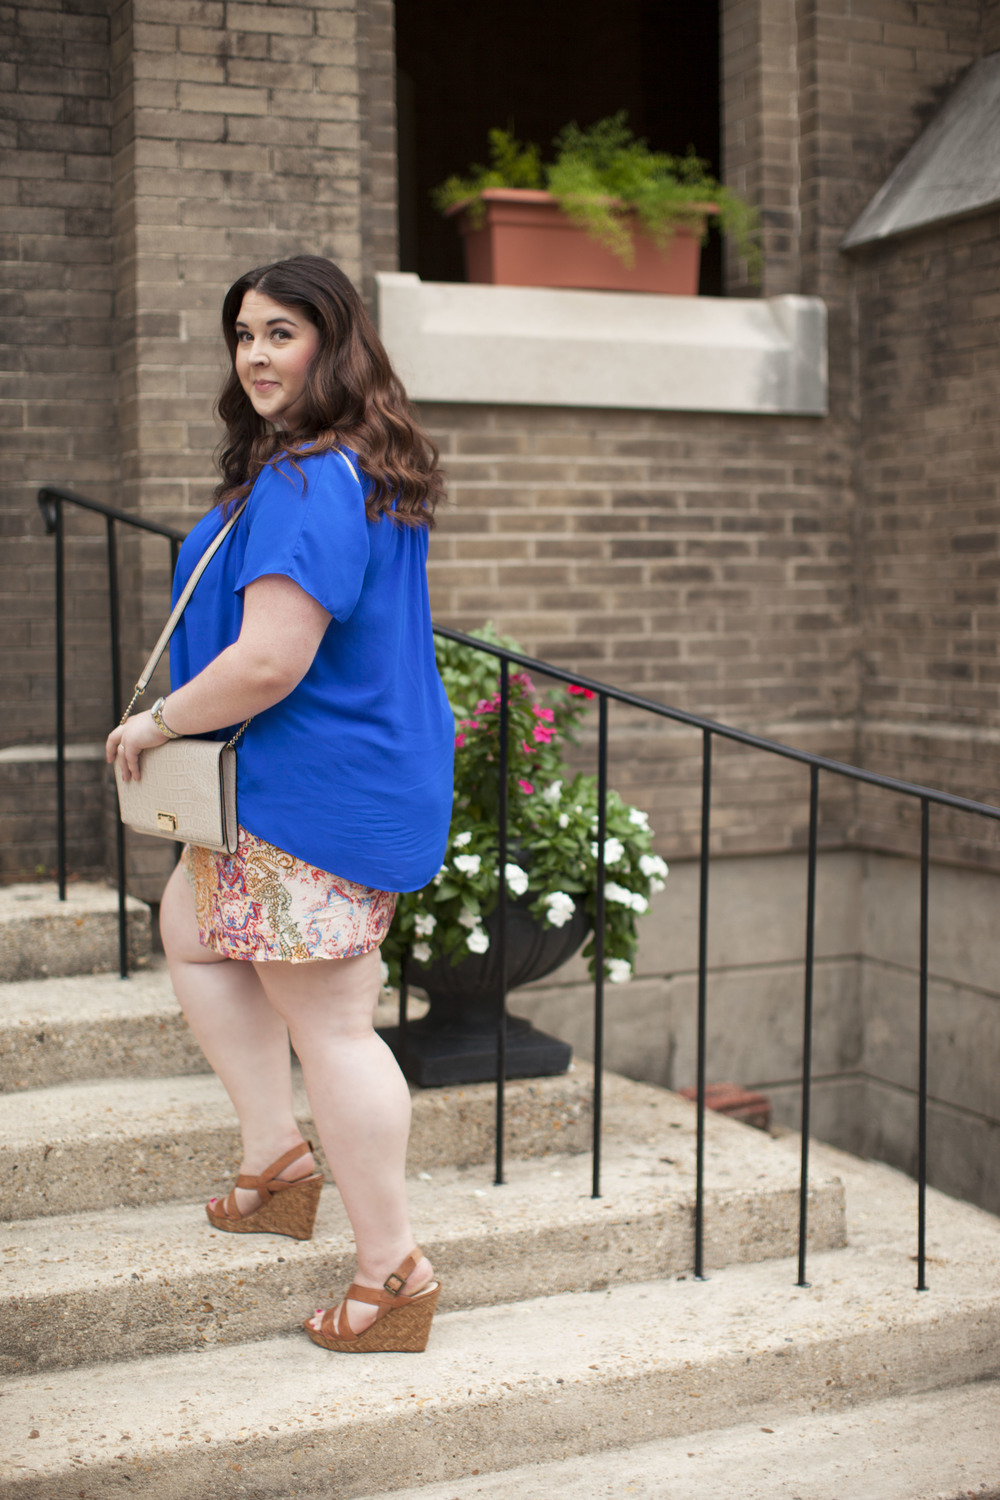 plus size street style royal blue top plus size linen shorts 008 copy.jpg